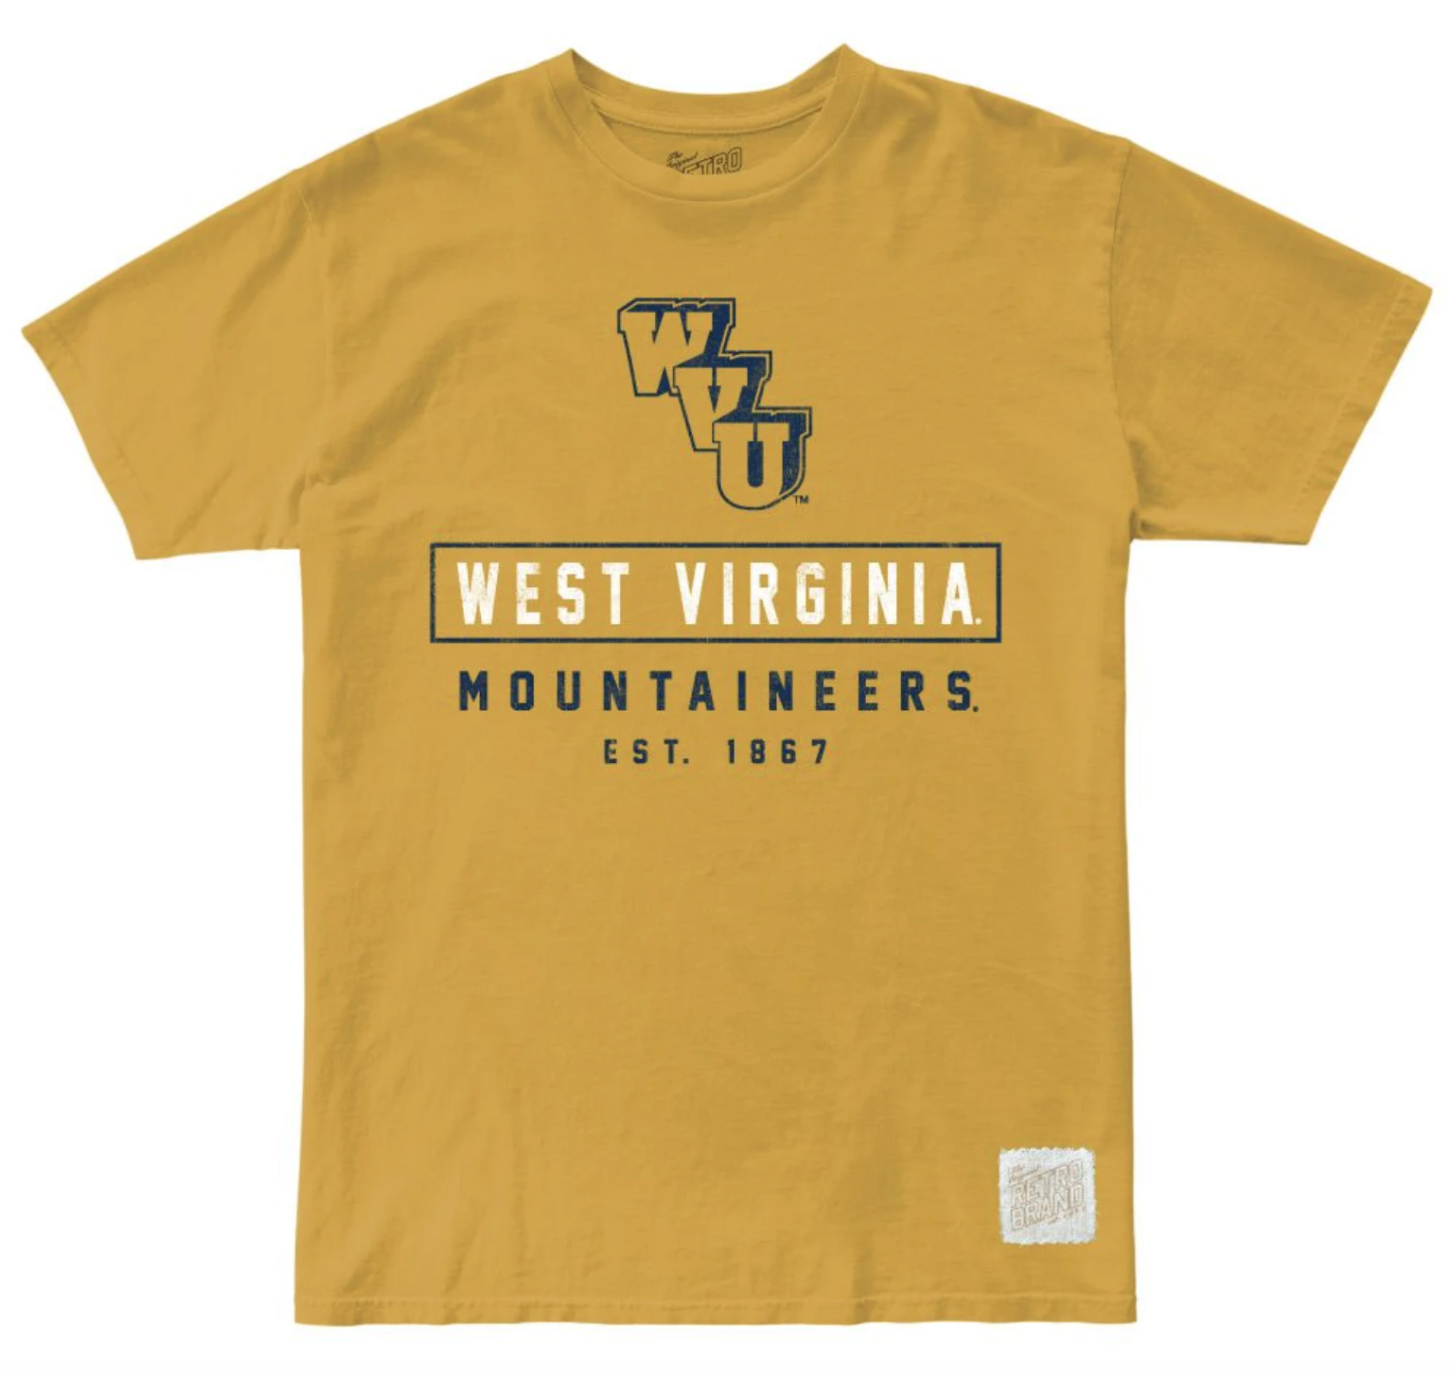 West Virginia Mountaineers 100% Cotton Unisex Tee